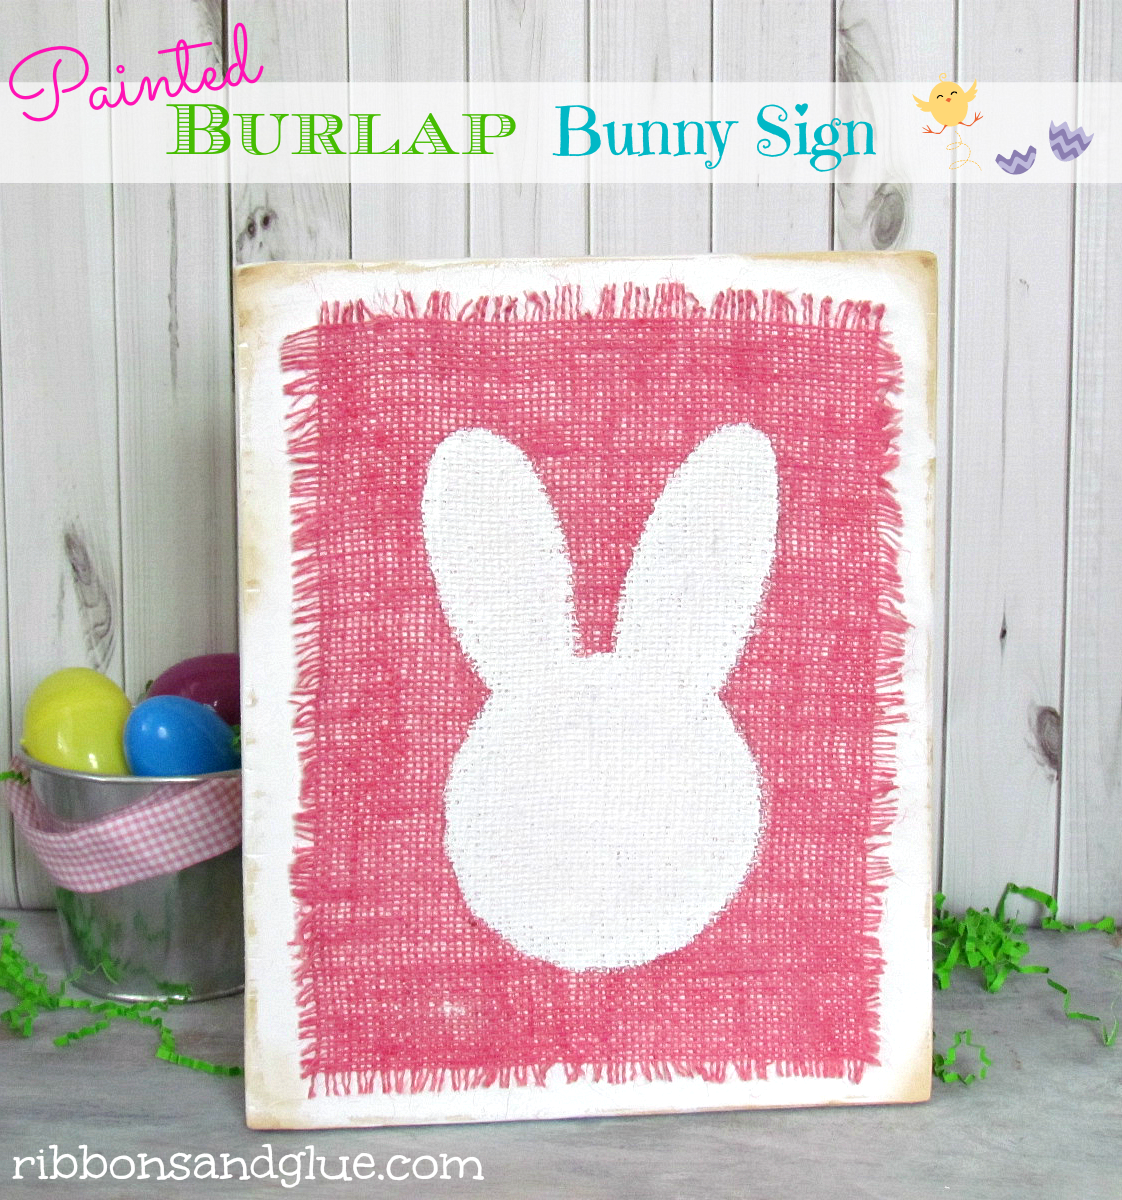 How to make a Burlap Bunny Sign